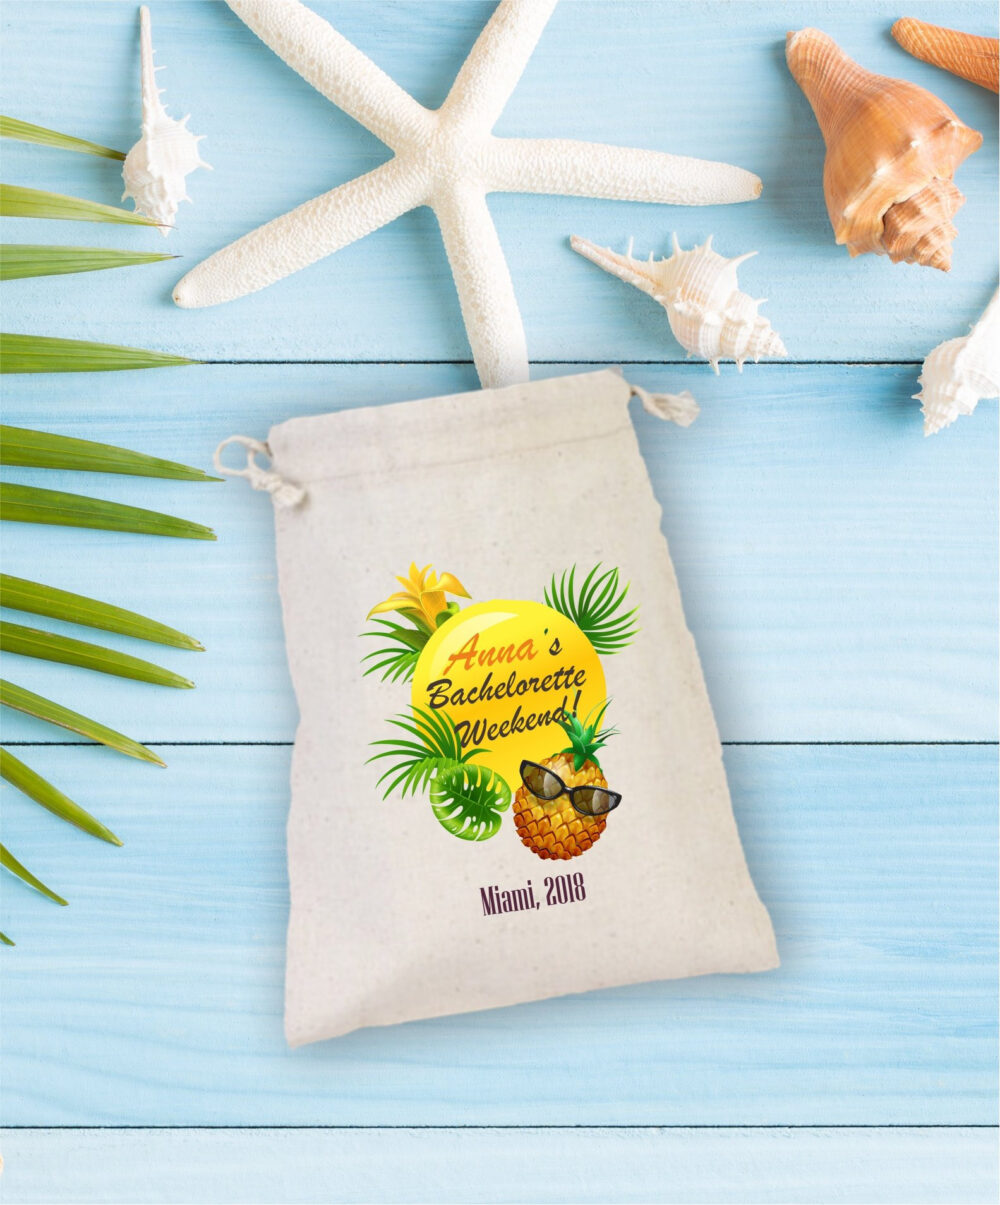 Bachelorette Hangover Kit, Drawstring Mini Favor Bags, Party Favor, Pineapple Bag, Sunglass, Personalized, Weekend, Miami